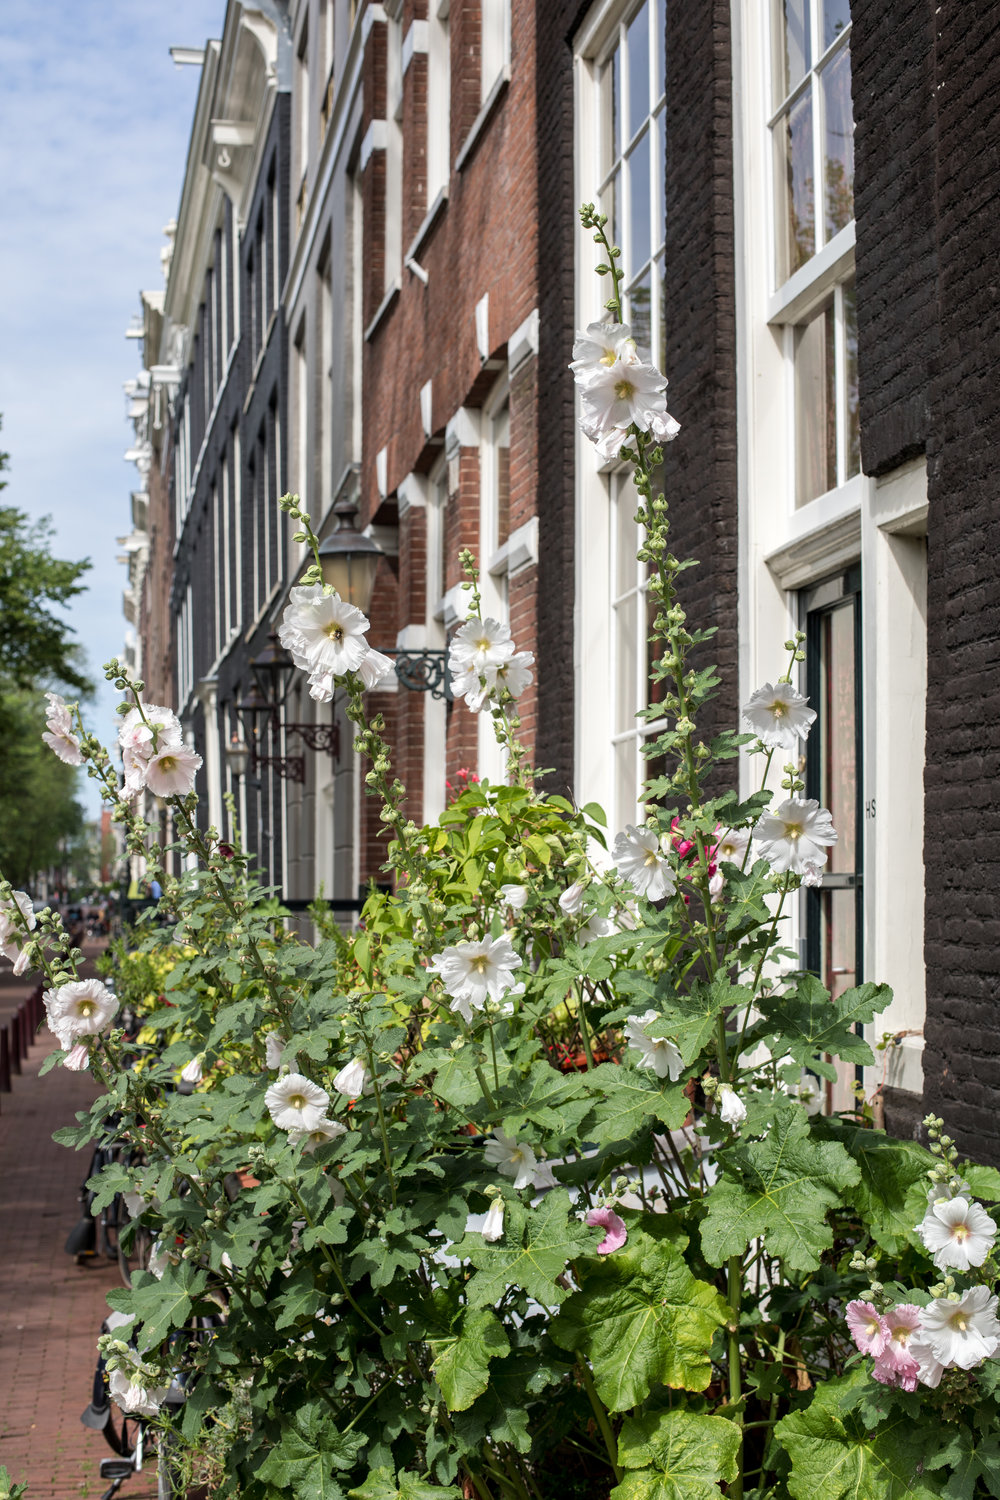 amsterdam-summer-hollyhocks-2.jpg